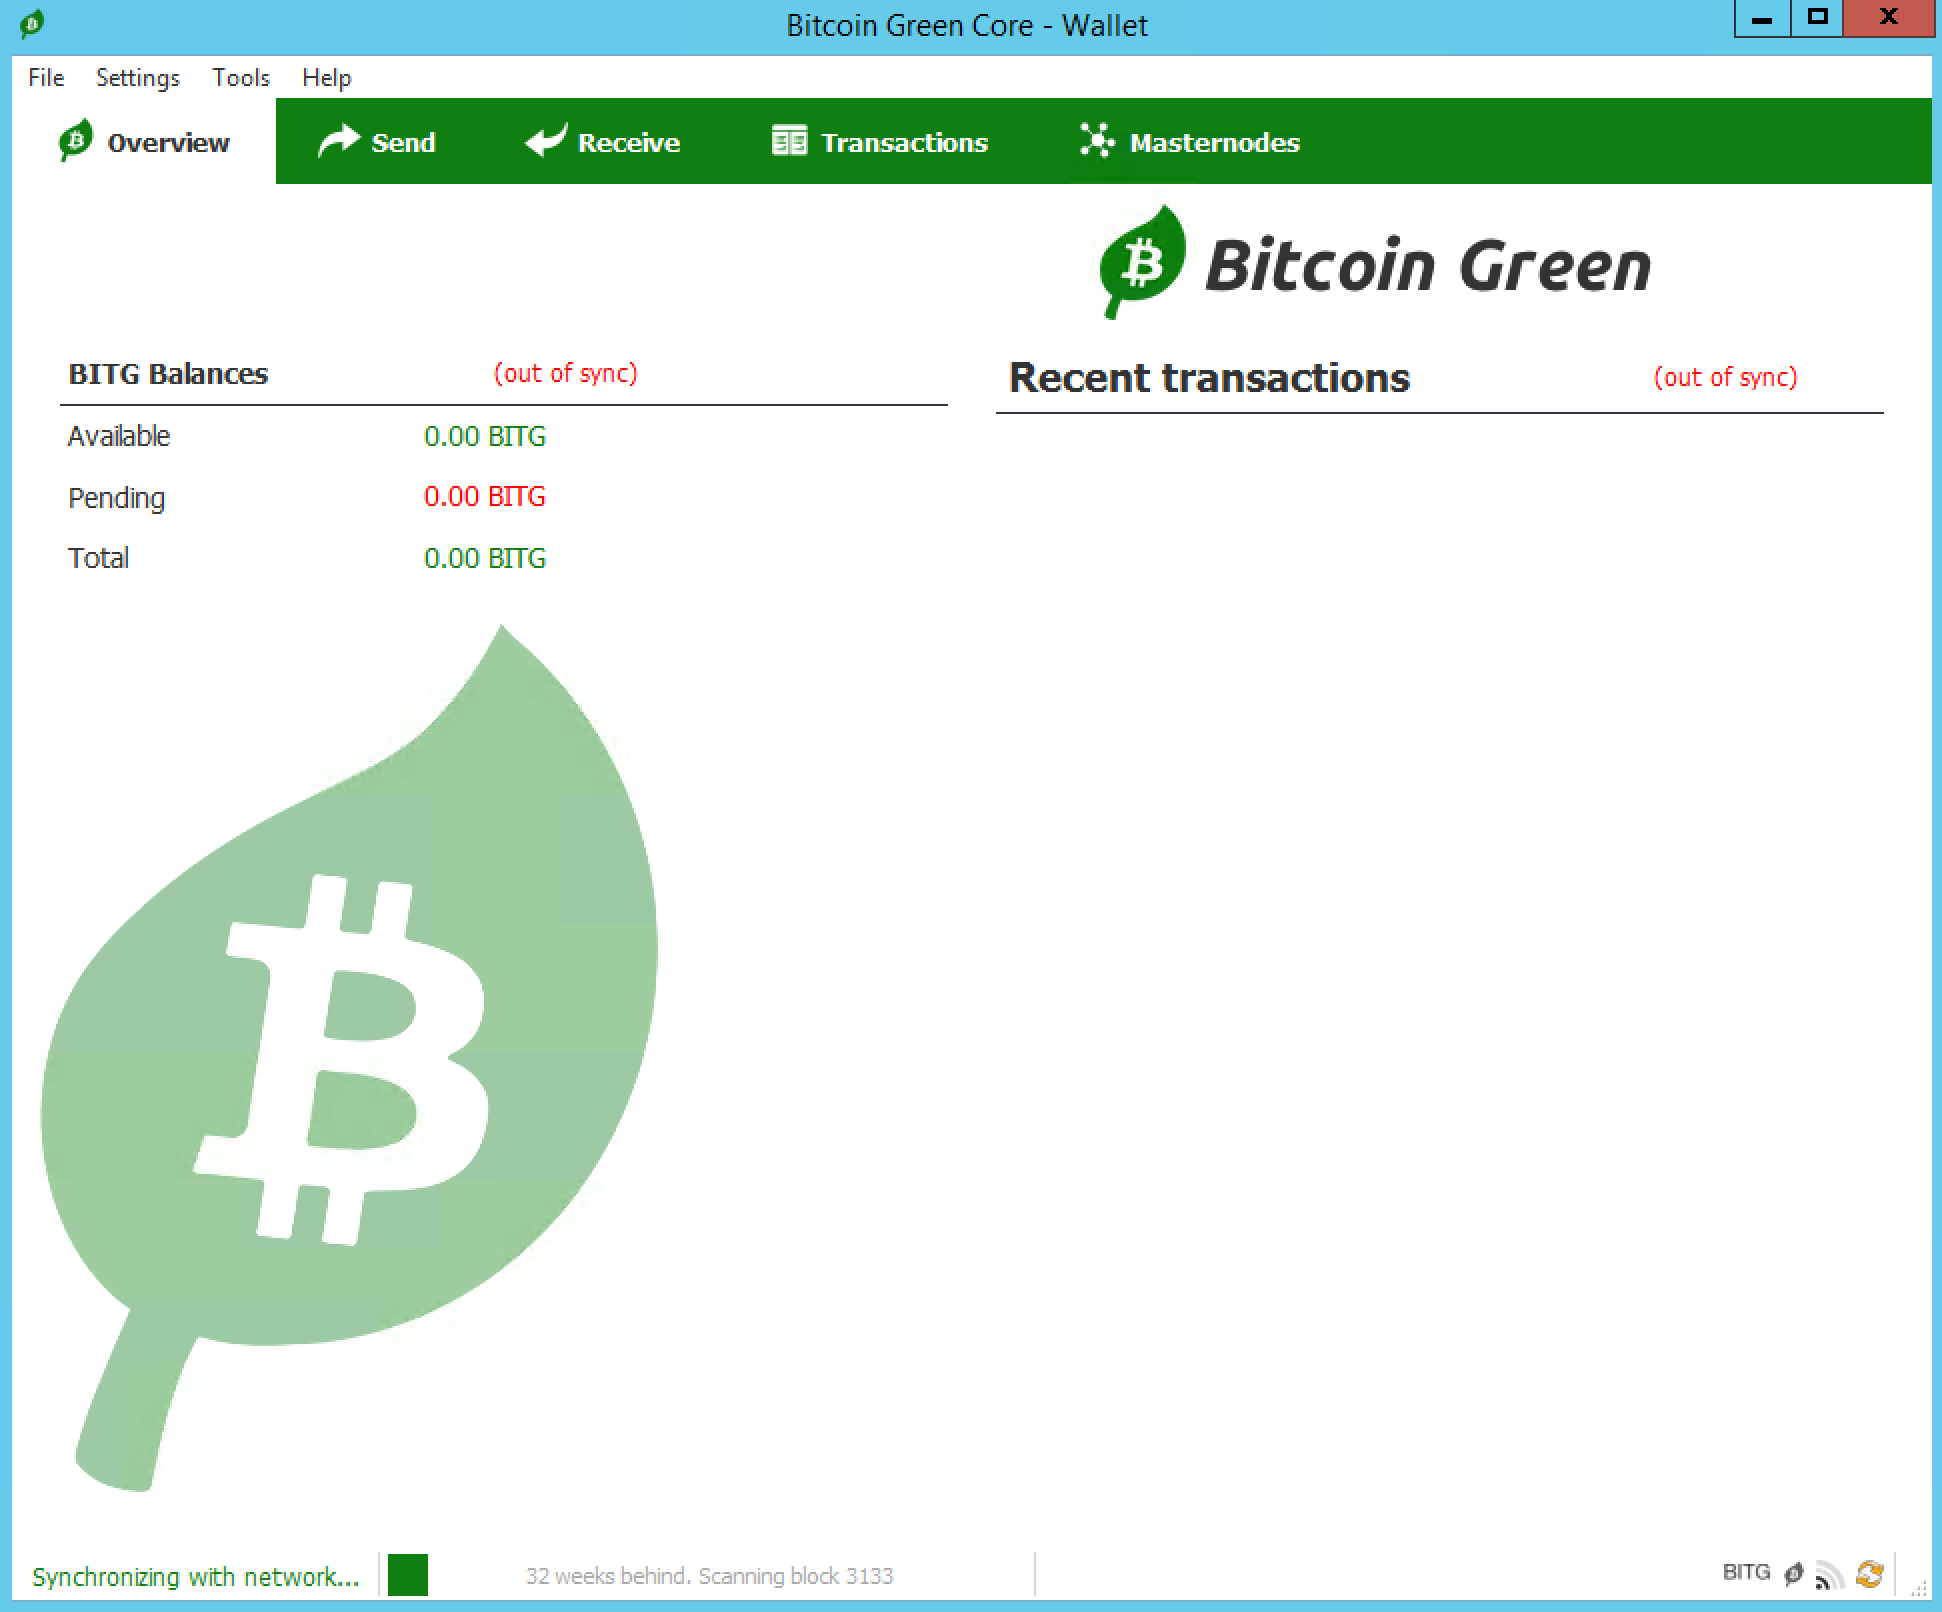 Green wallets bitcoins coronation cup betting 2021 election